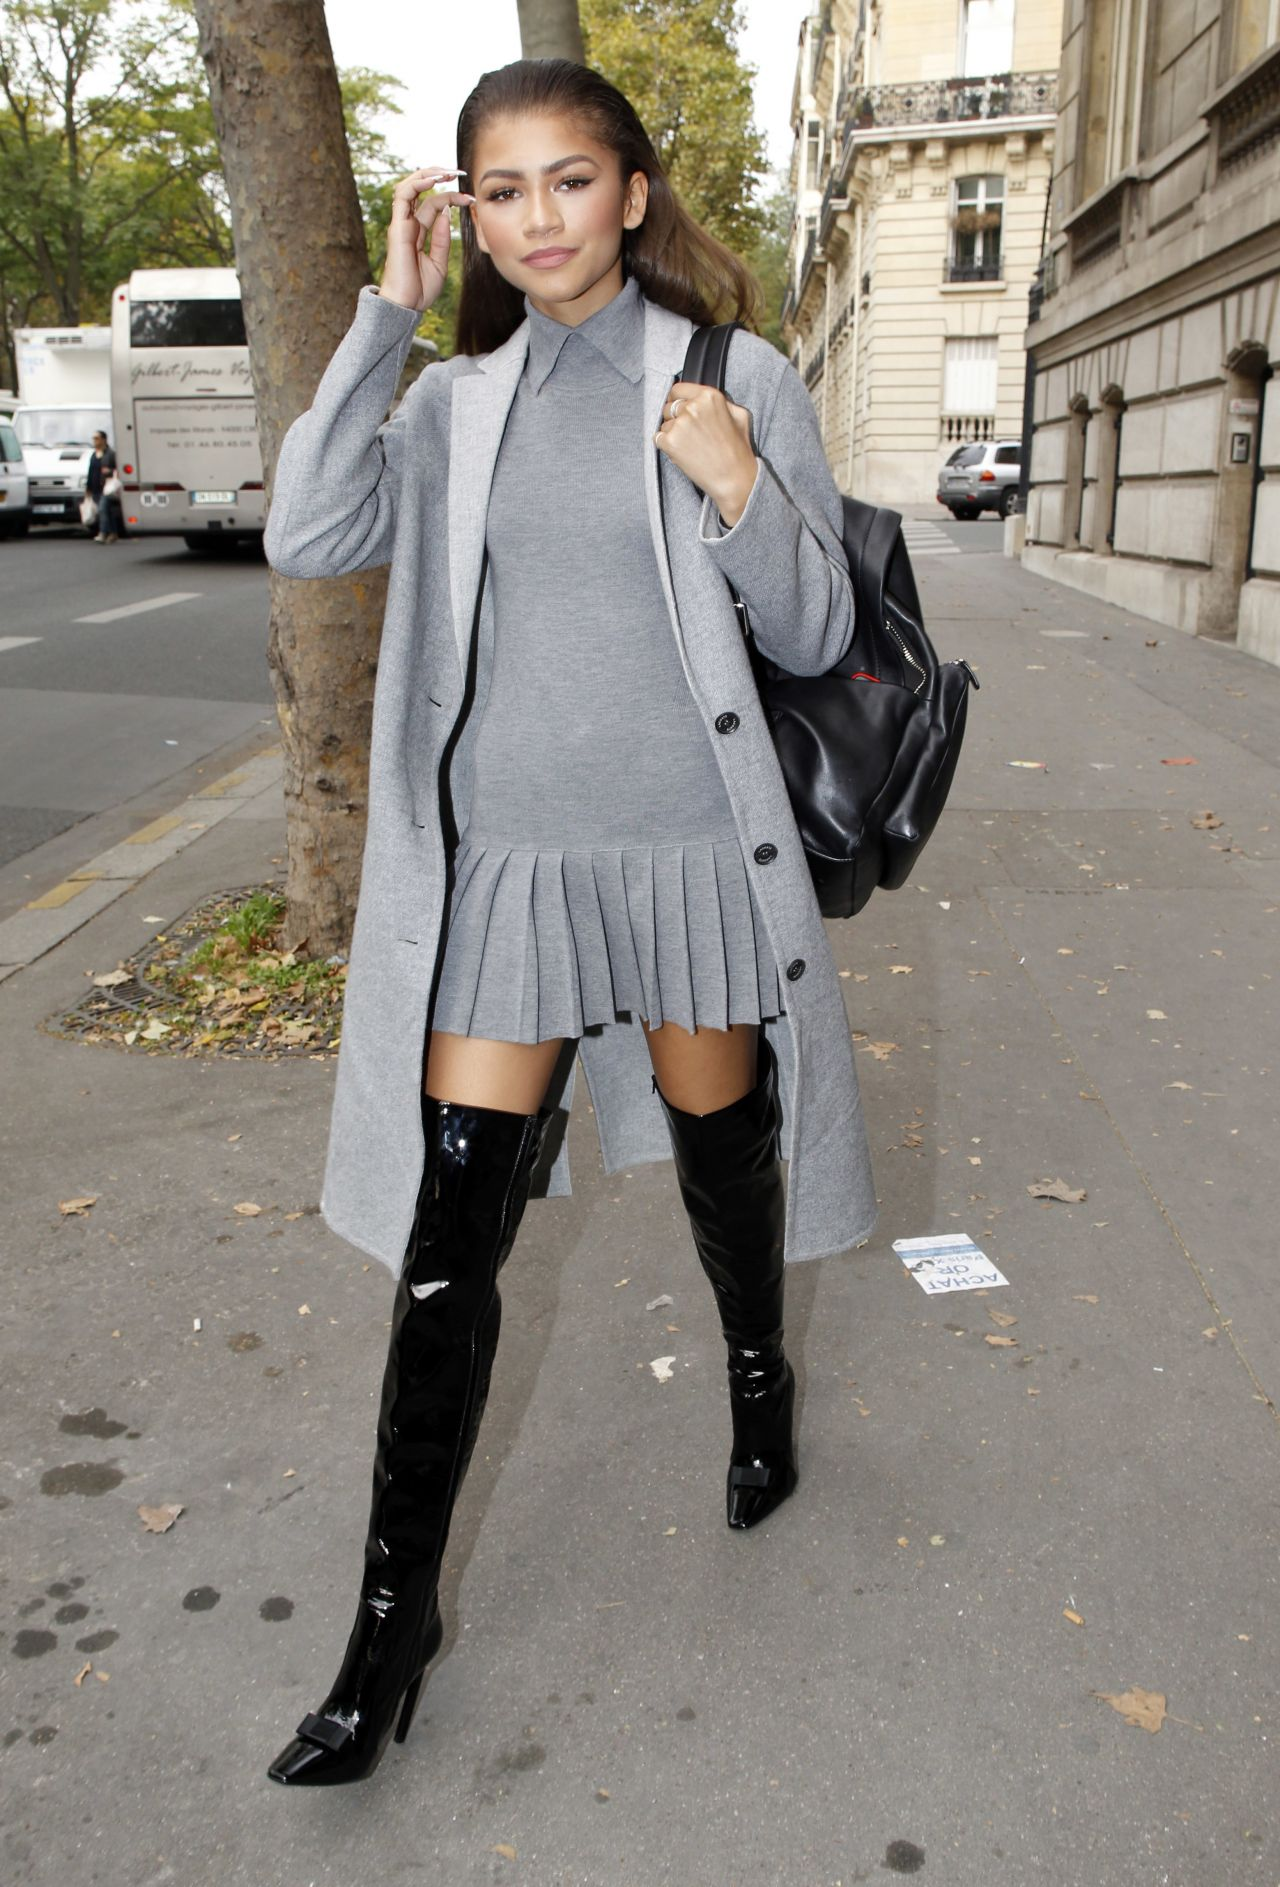 Zendaya out in paris fashionsizzle Fashion style october 2015